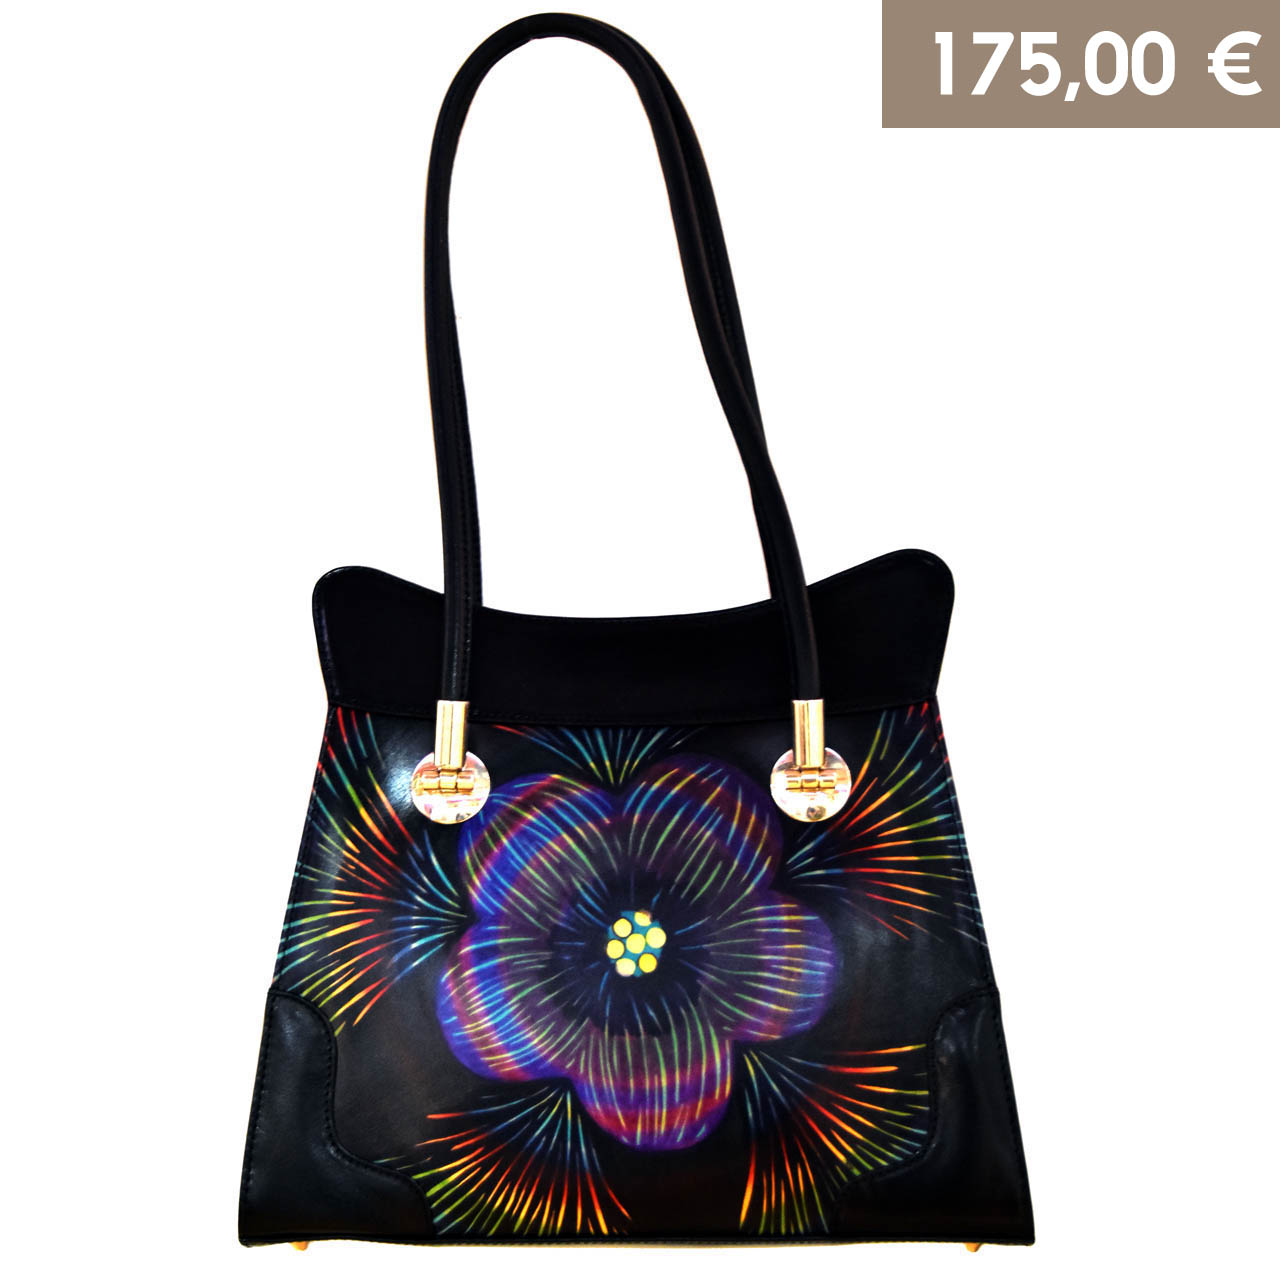 art-bag-bambas-collection-barin-enents-flowers-with-price-sale